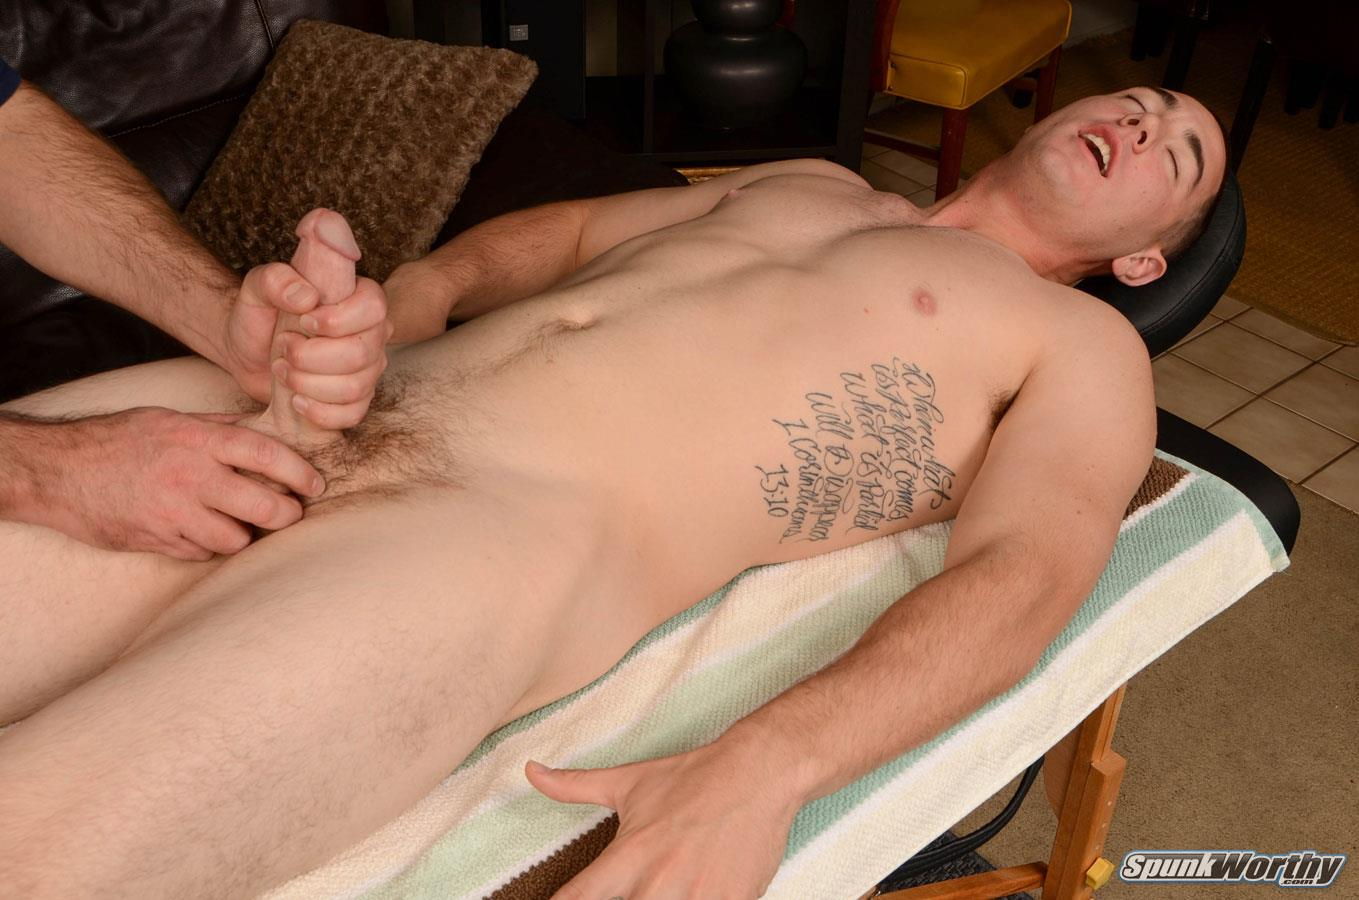 SpunkWorthy-Damian-Straight-Marine-Gets-a-Handjob-From-A-Guy-Amateur-Gay-Porn-14 Straight 22 Year Old Marine Gets A Handjob From A Guy